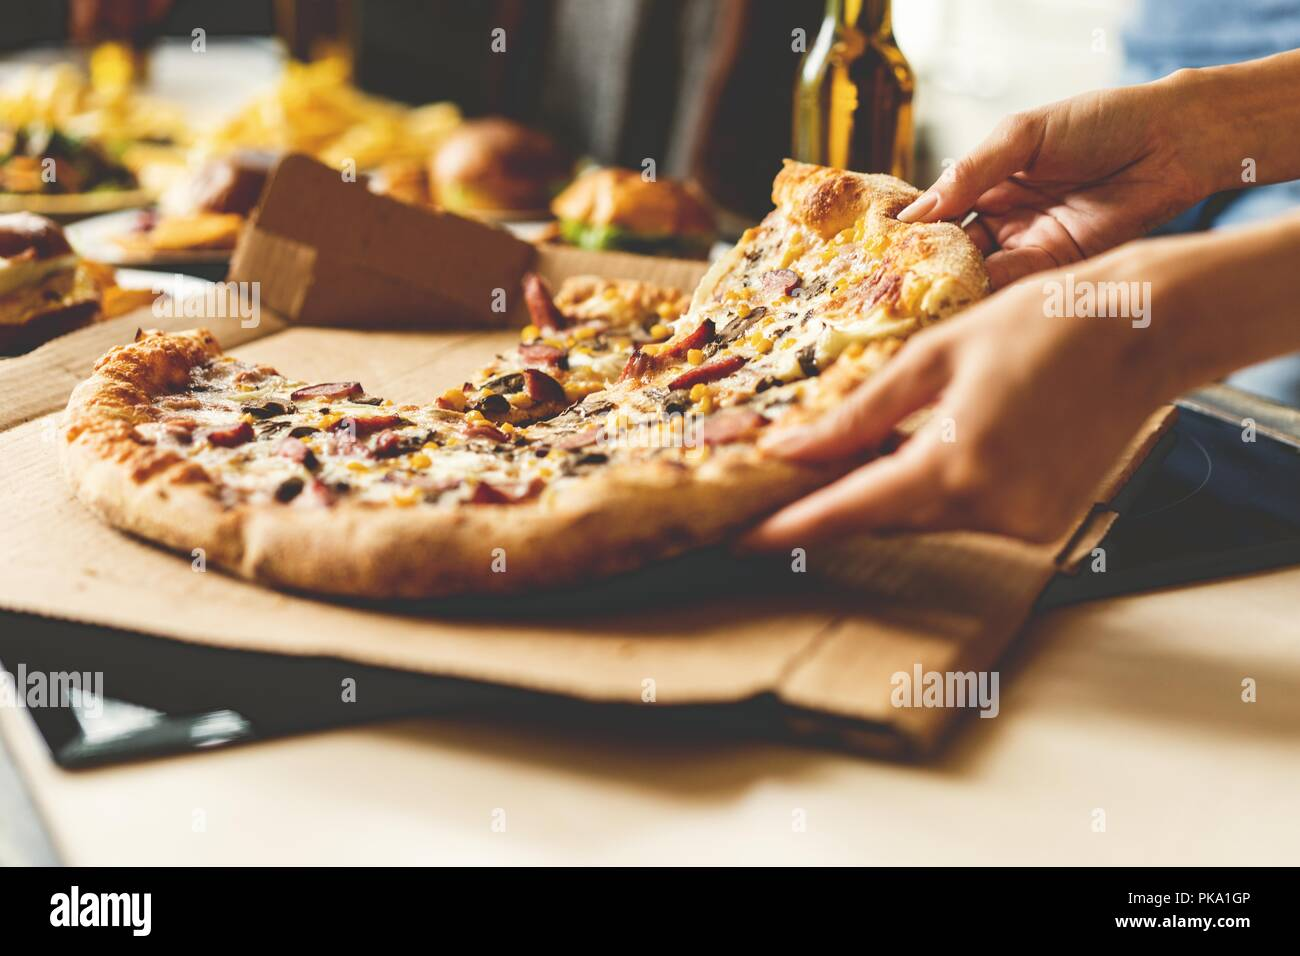 Friends taking slices of tasty pizza from plate, close up view. - Stock Image